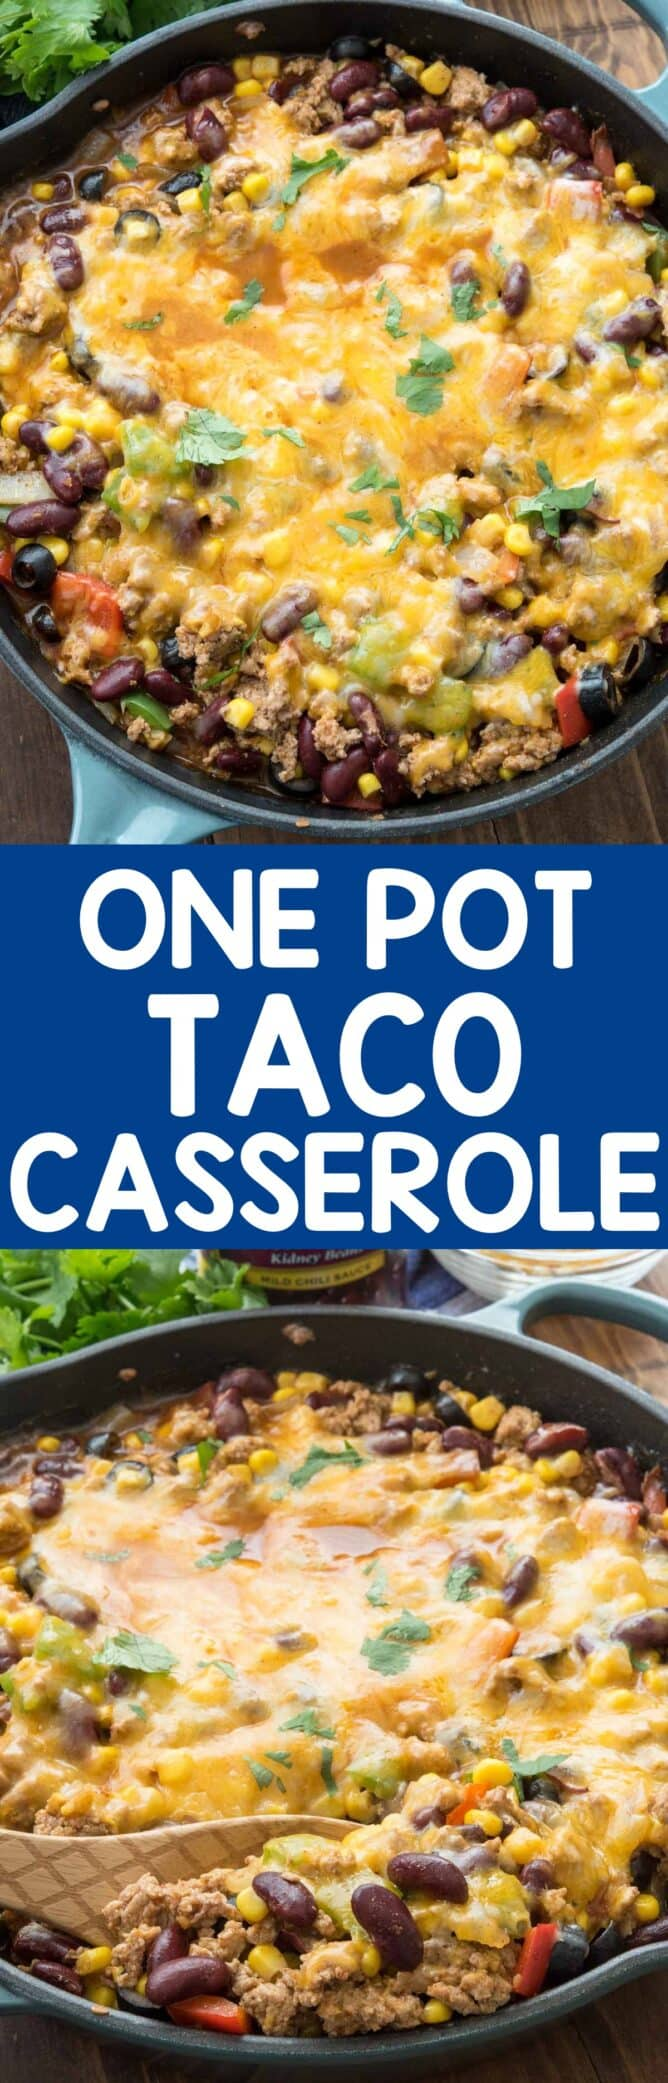 One Pot Taco Casserole collage photo of photos of casserole in pan